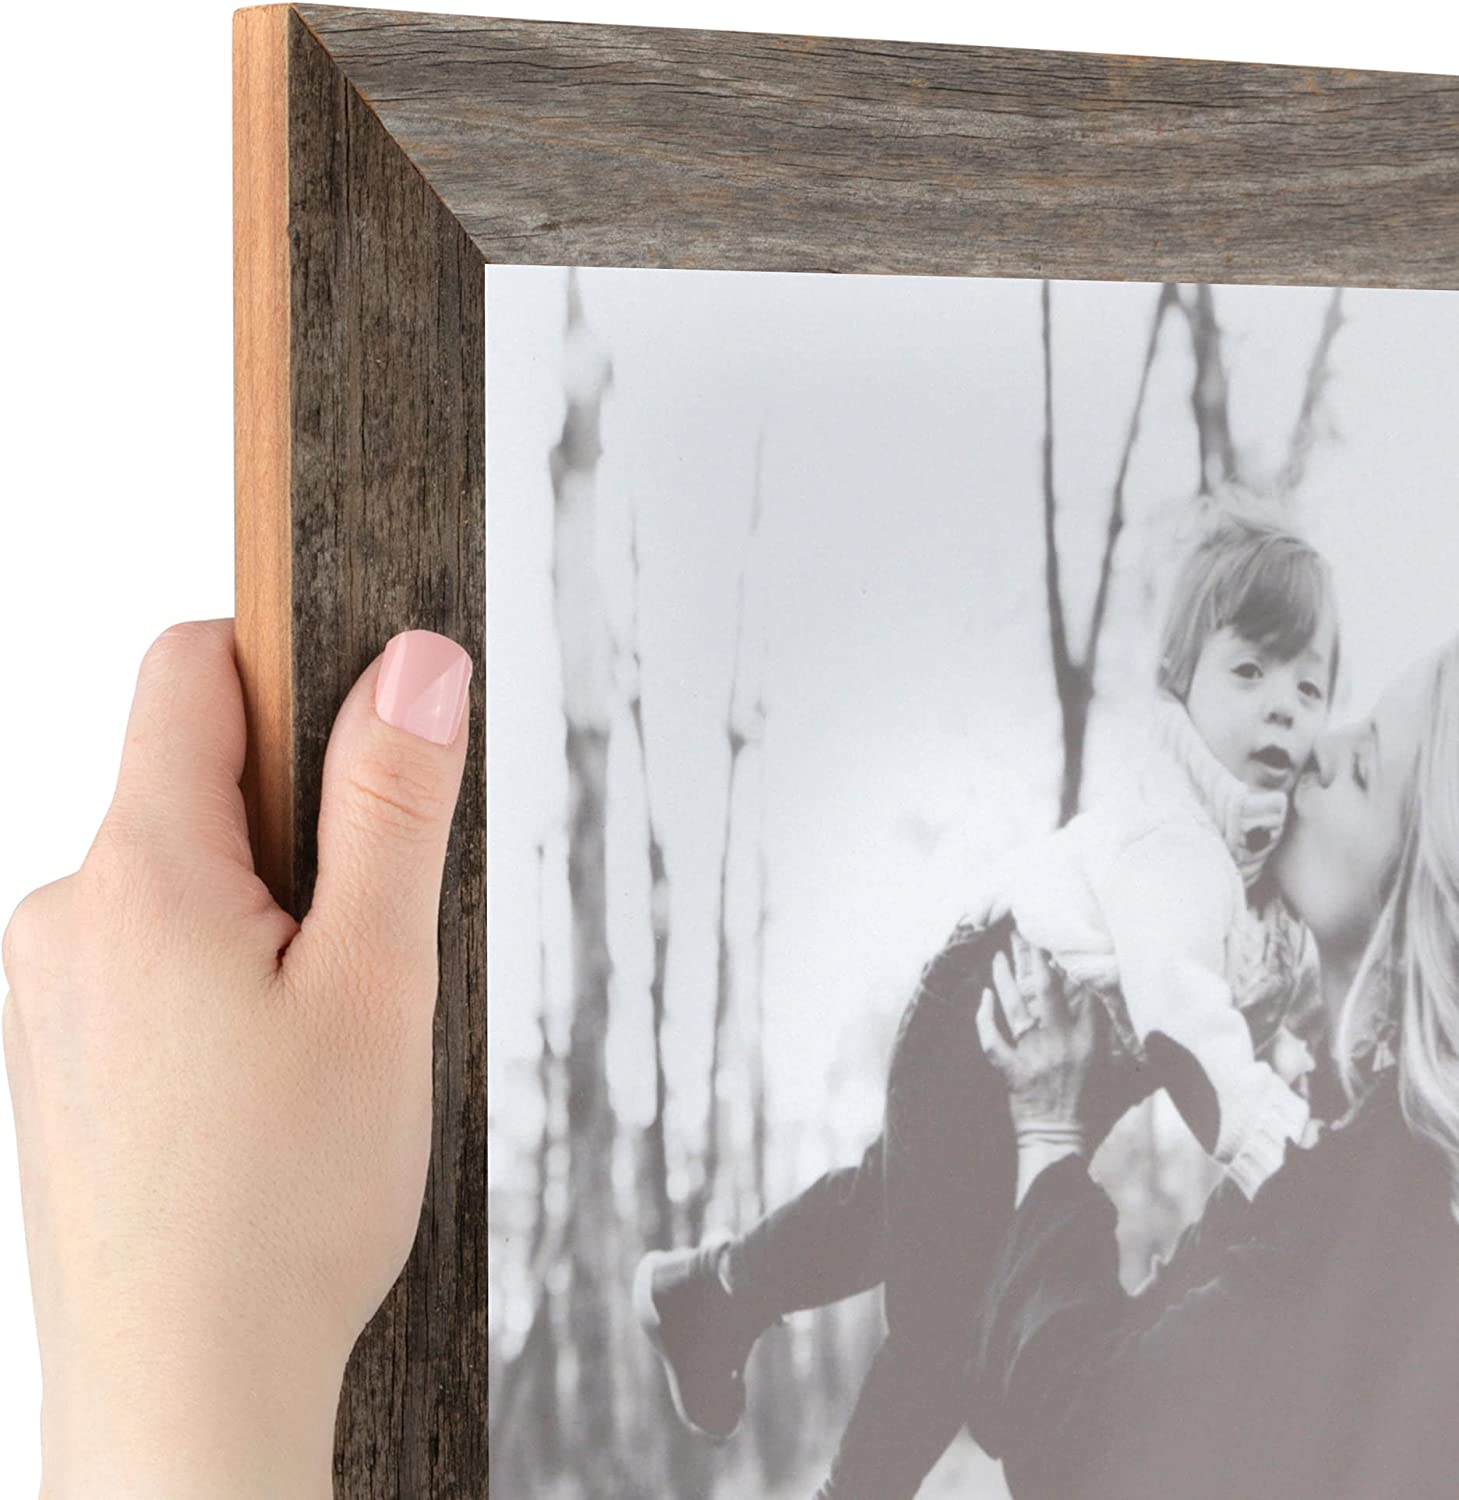 ArtToFrames 12x12 Inch Brown Picture Frame Woo This Custom Low price 1.5